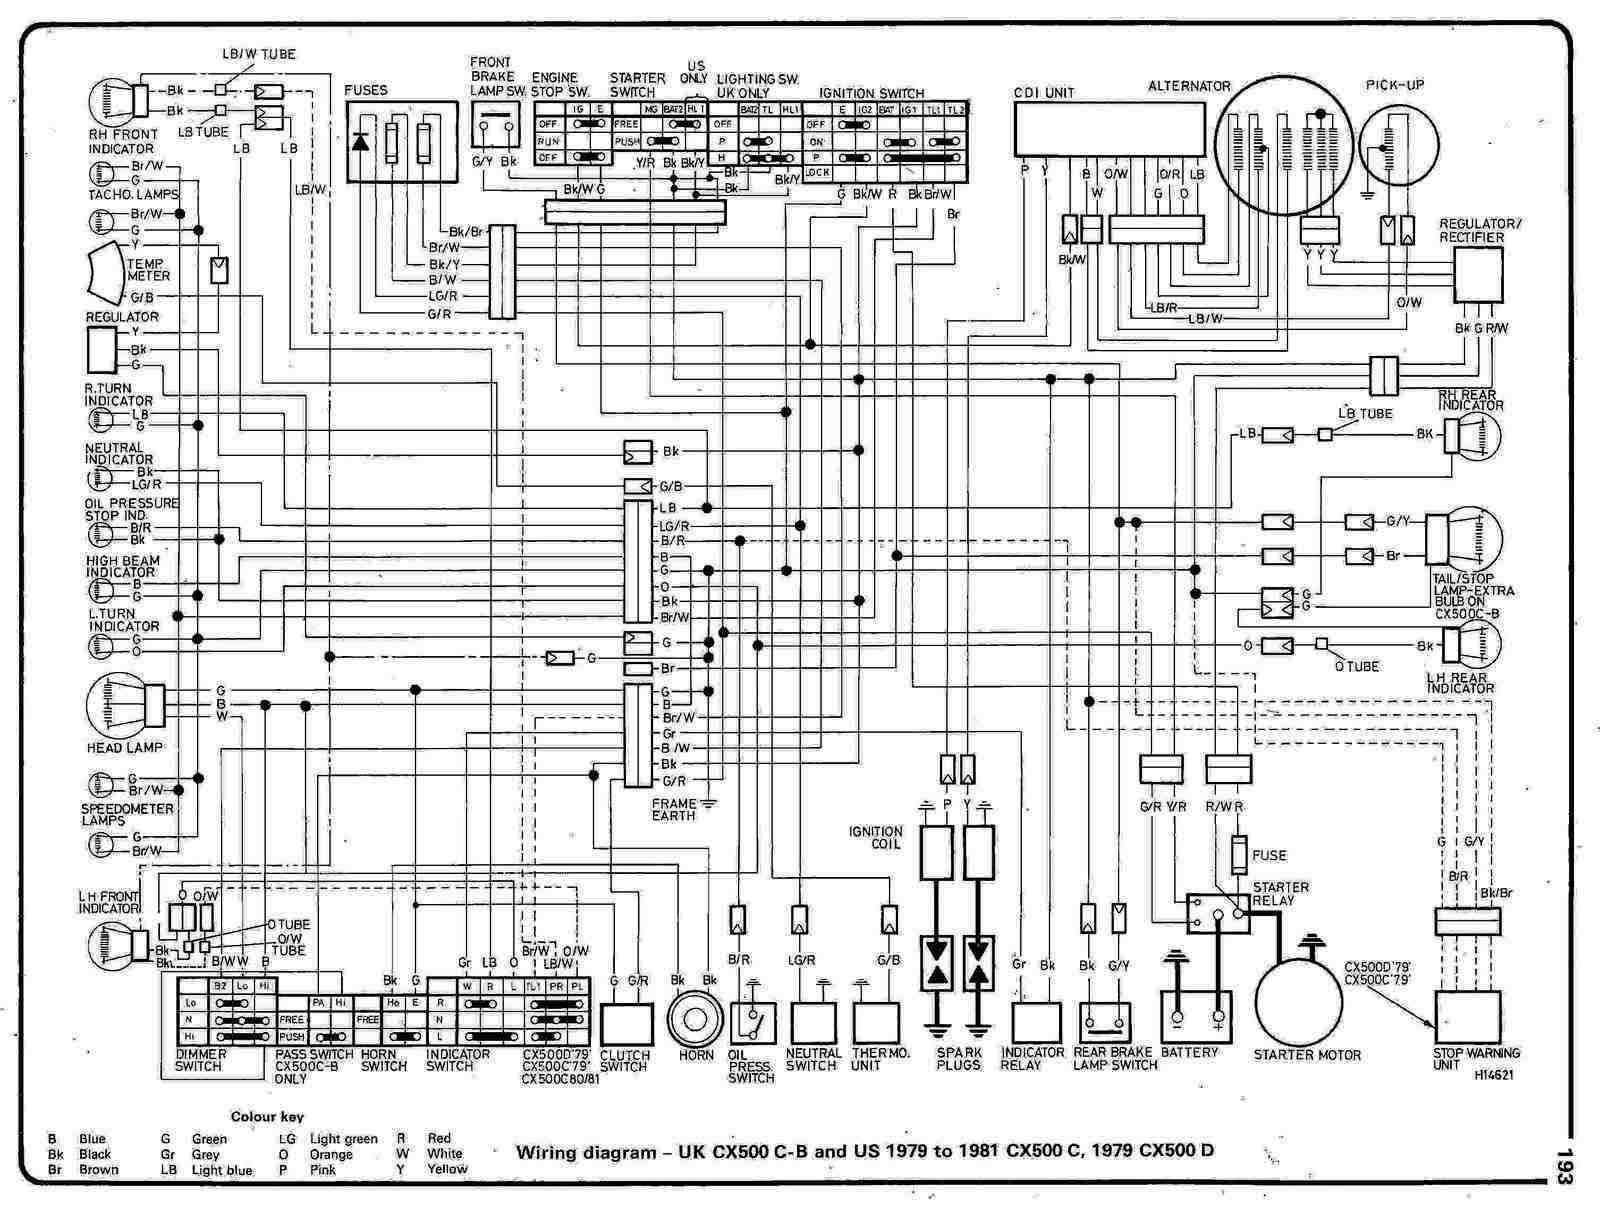 honda wave 100 alpha wiring diagram honda image honda nt700v wiring diagram honda wiring diagrams on honda wave 100 alpha wiring diagram